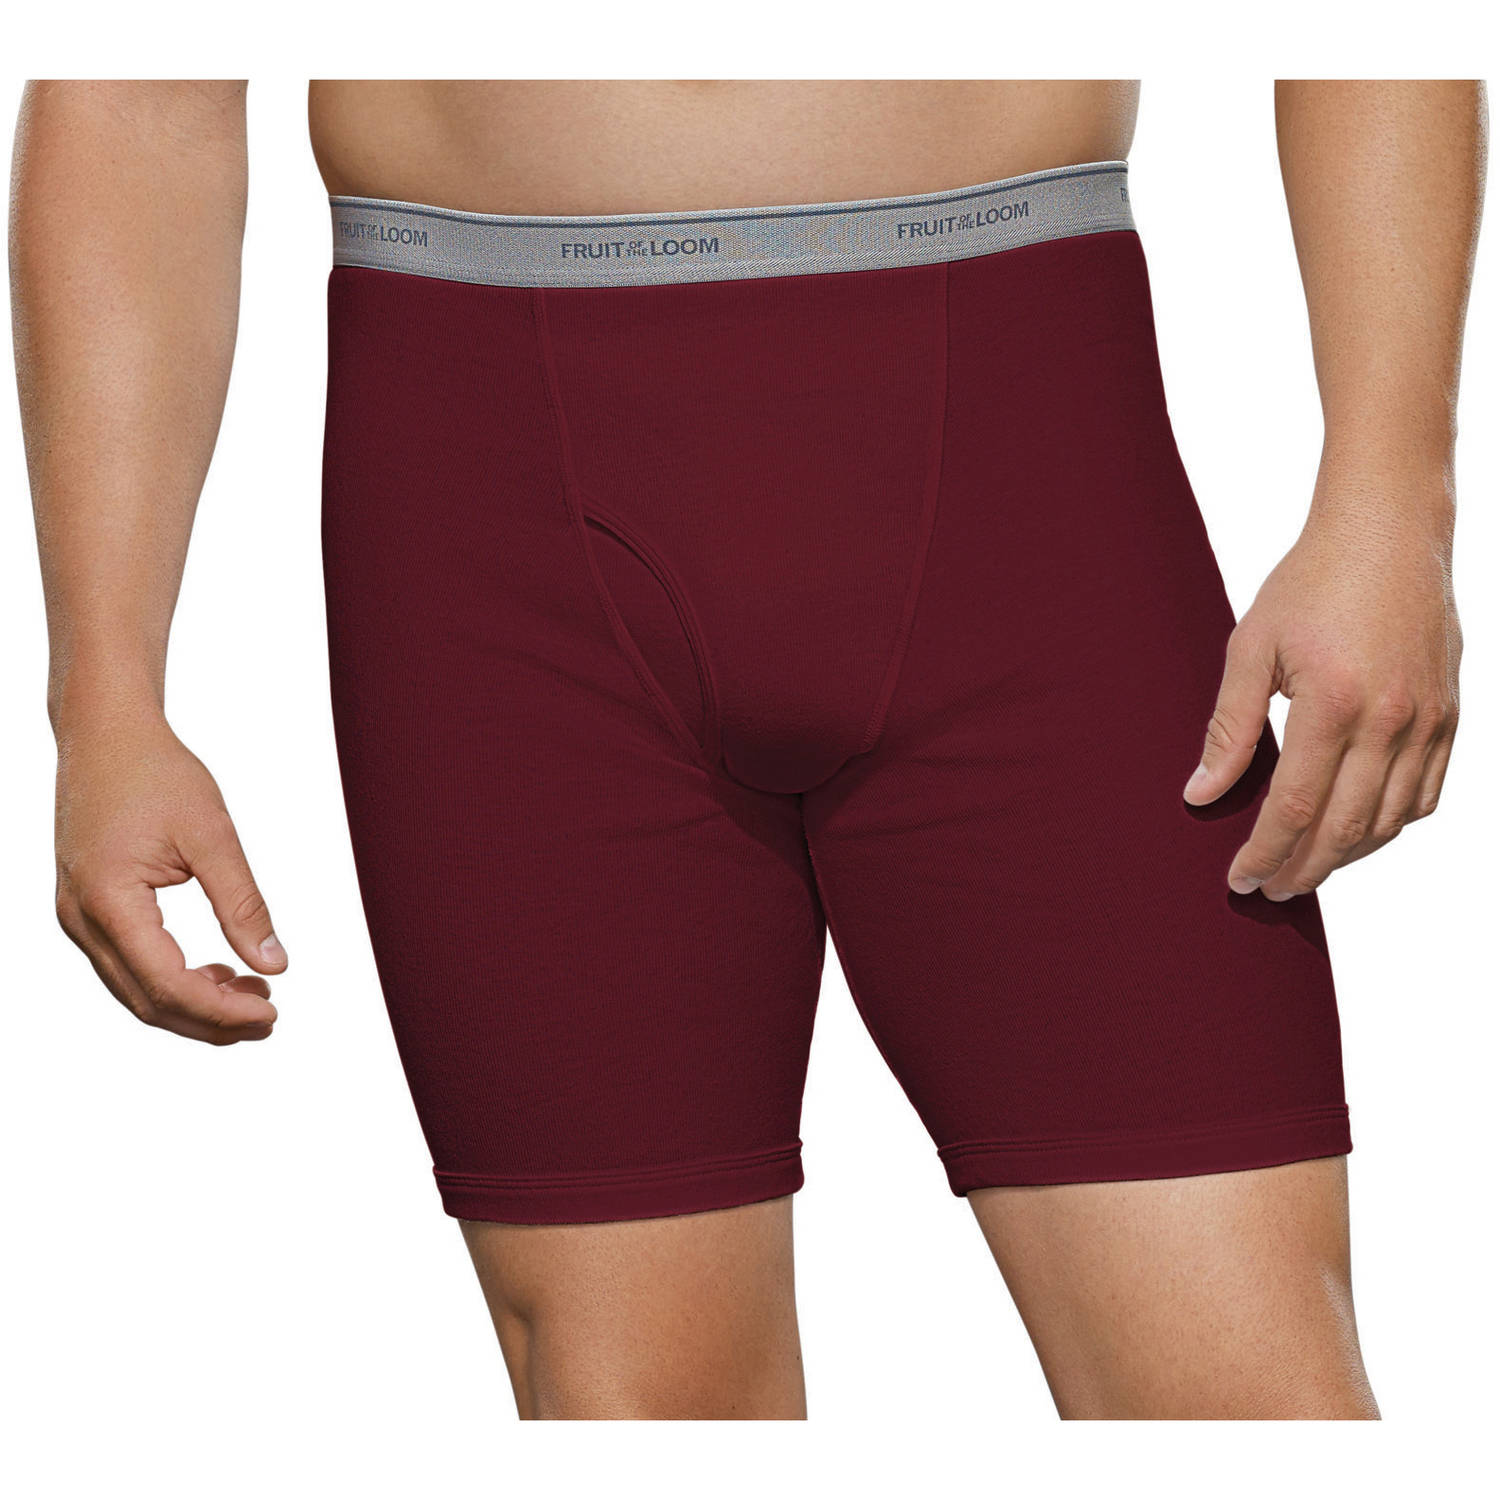 Fruit of the Loom Big Men's Collection Boxer Briefs, 2-Pack